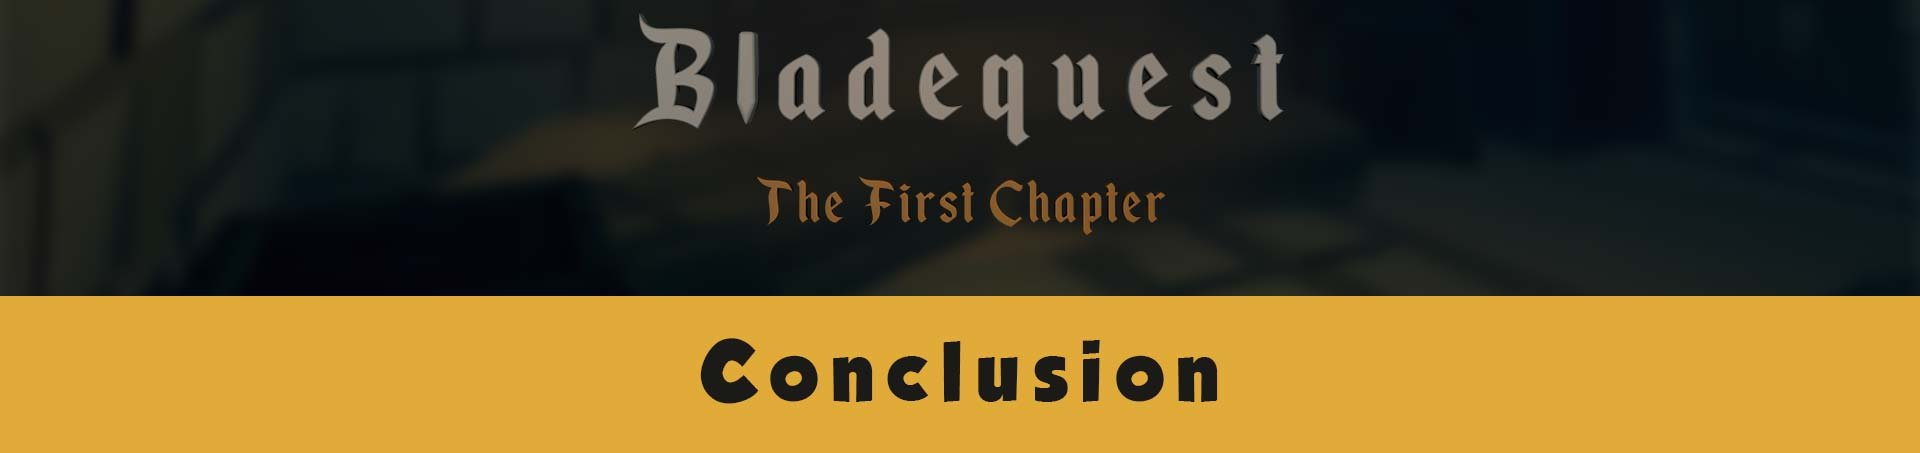 Bladequest – The First Chapter Conclusion